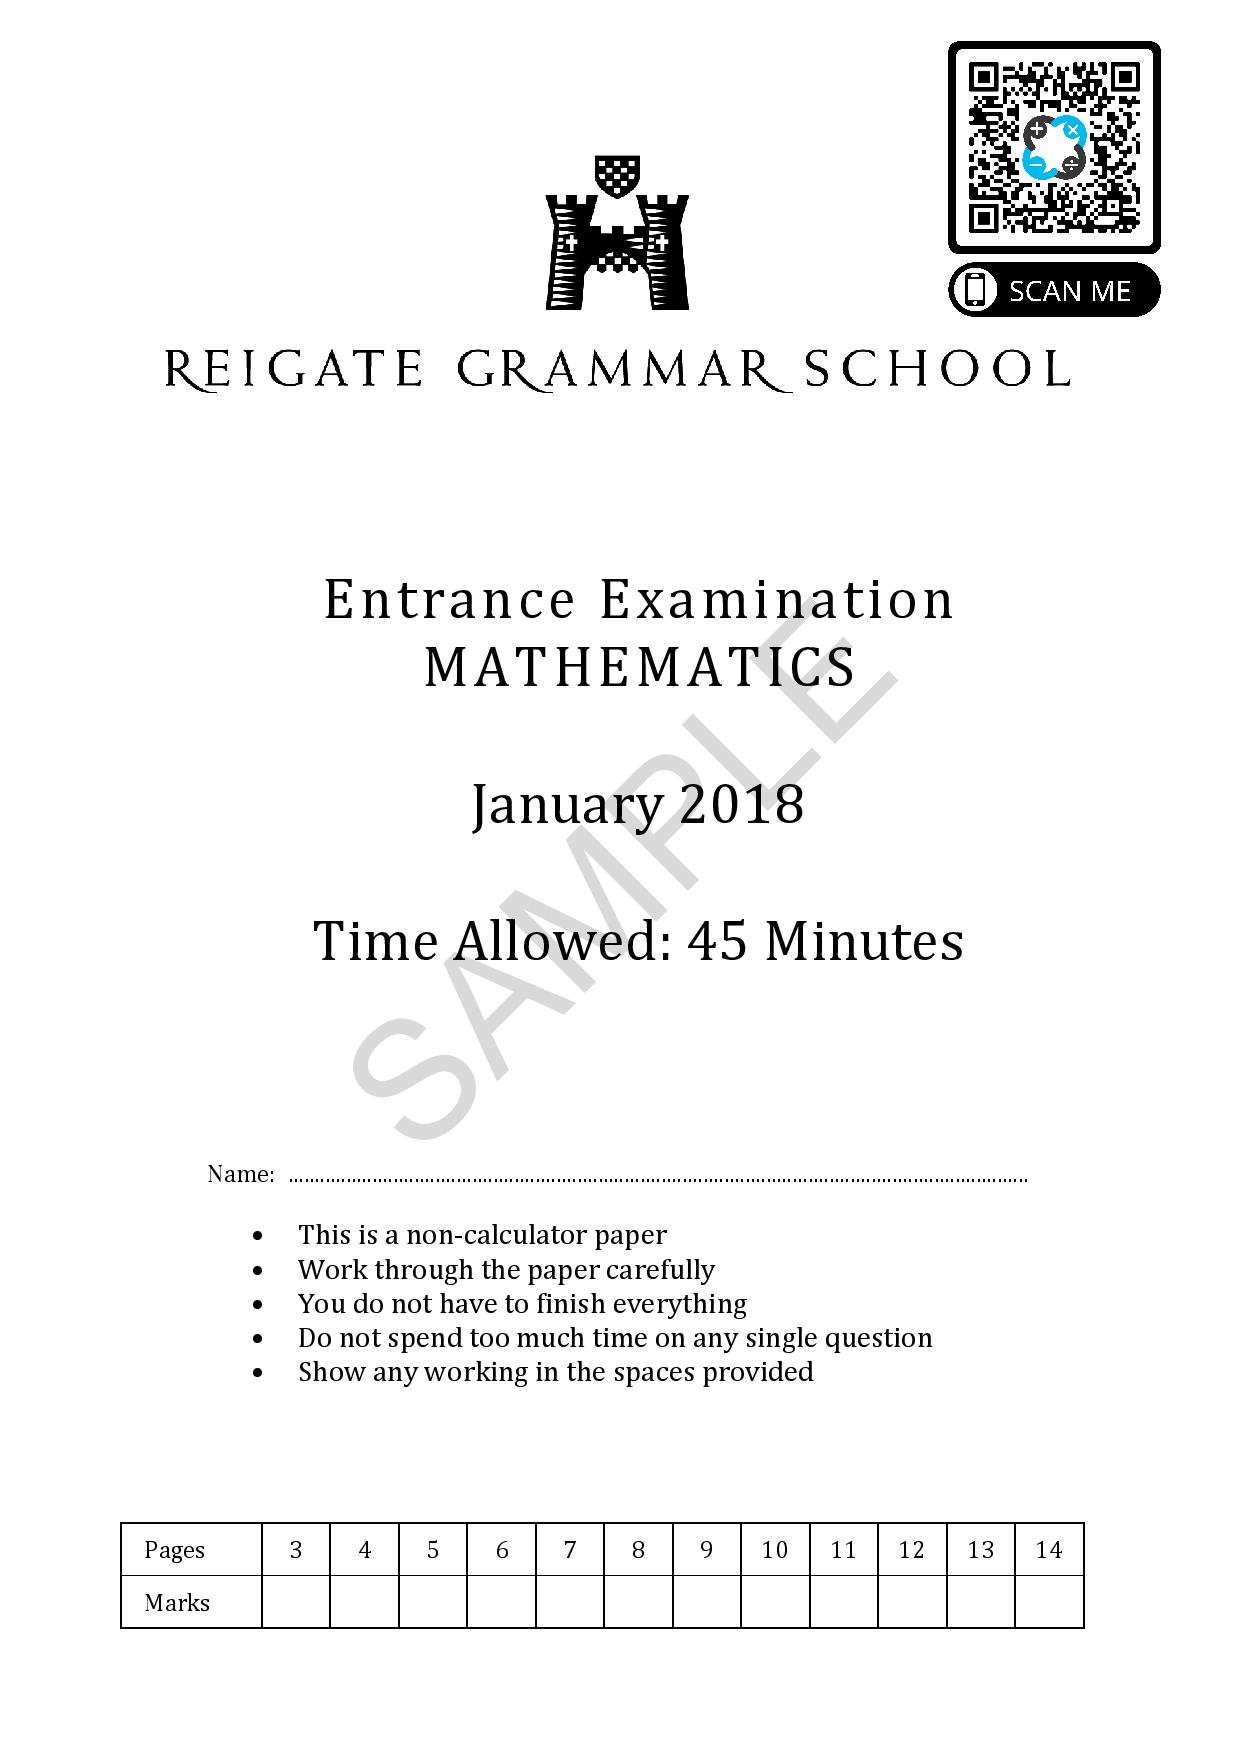 13 Pre Test Maths Entrance Exam January 2018 SAMPLE reigate page 001